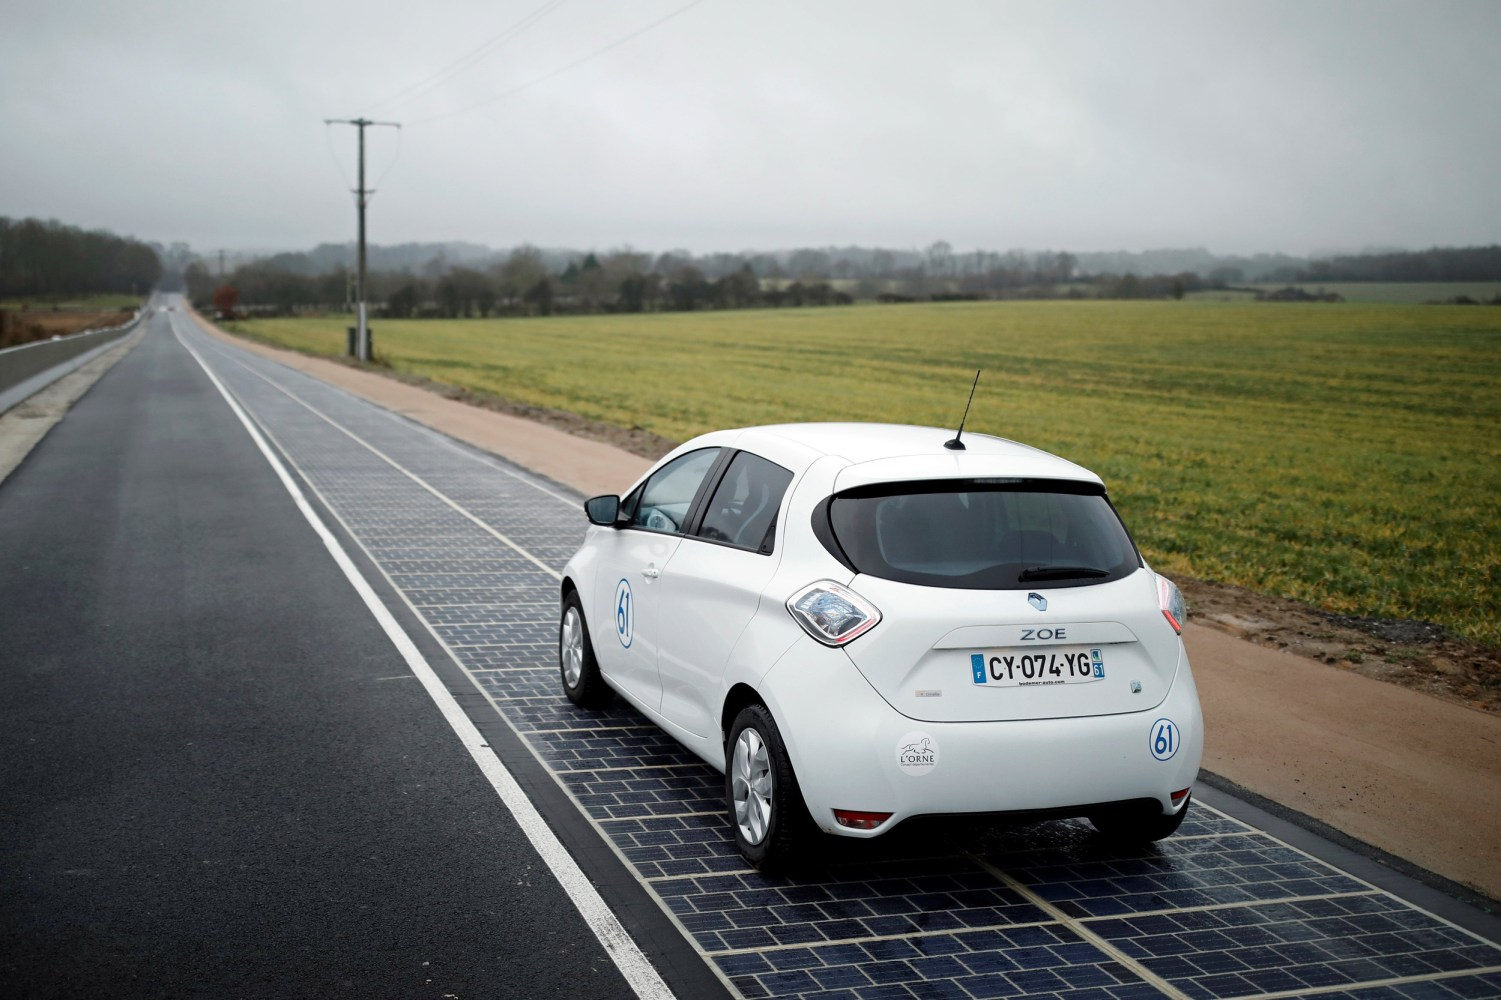 France Opens the World's First Solar Panel Road